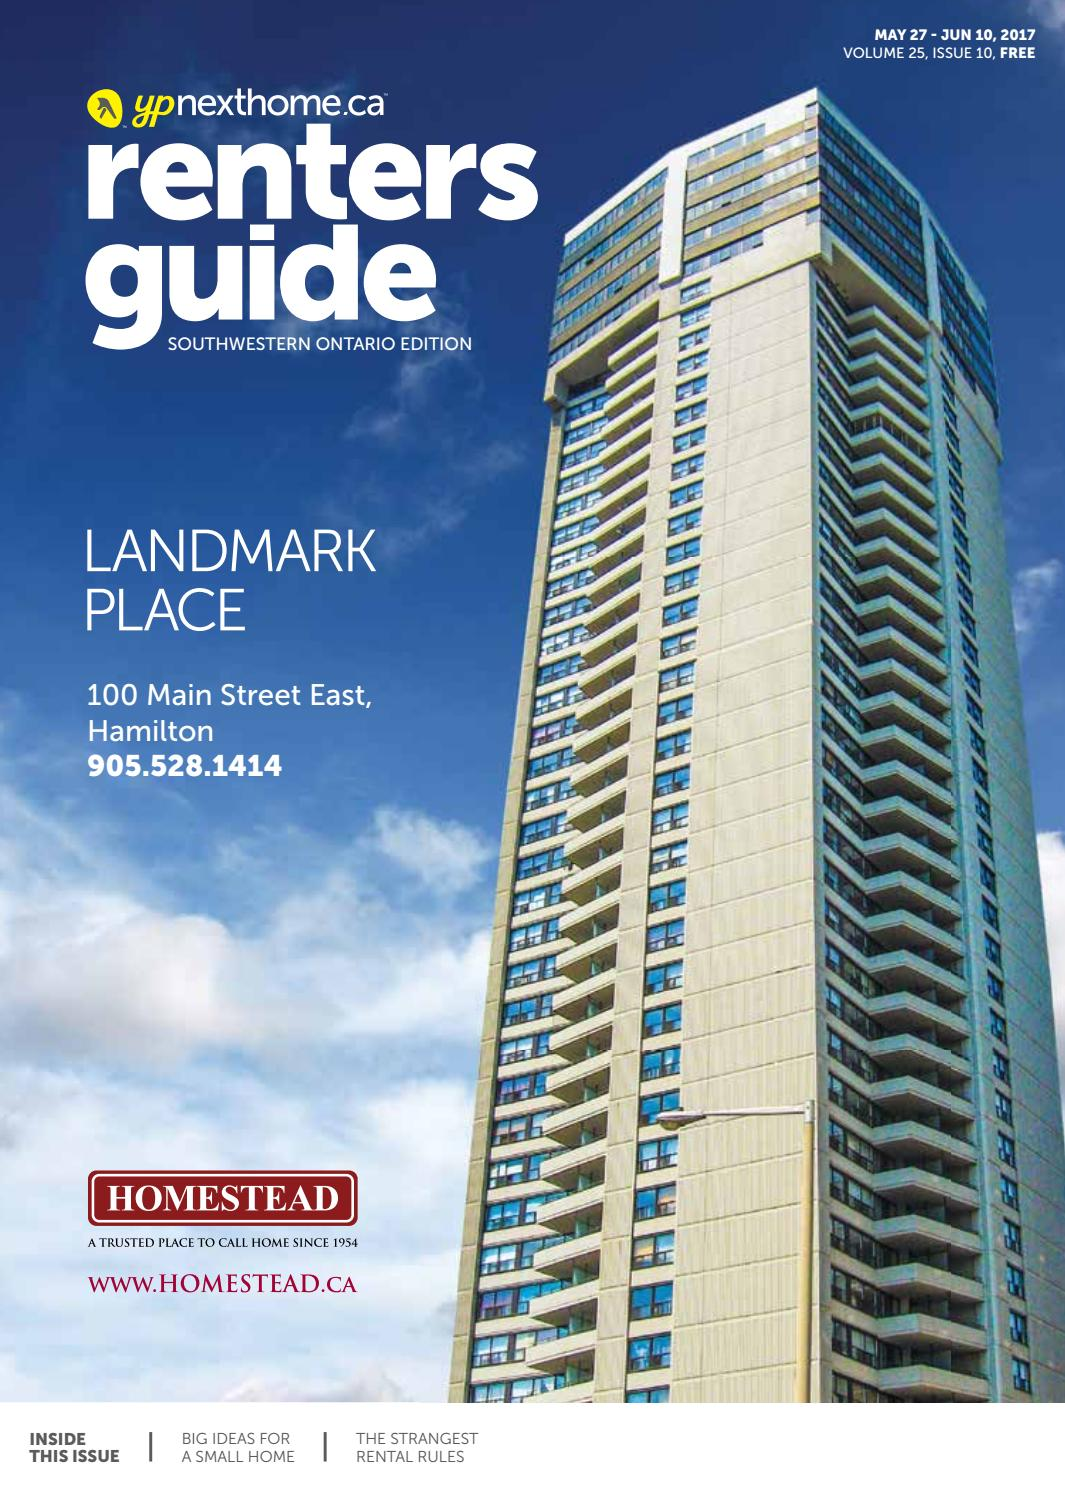 South Western Ontario Renters Guide - May 27, 2017 by NextHome - issuu